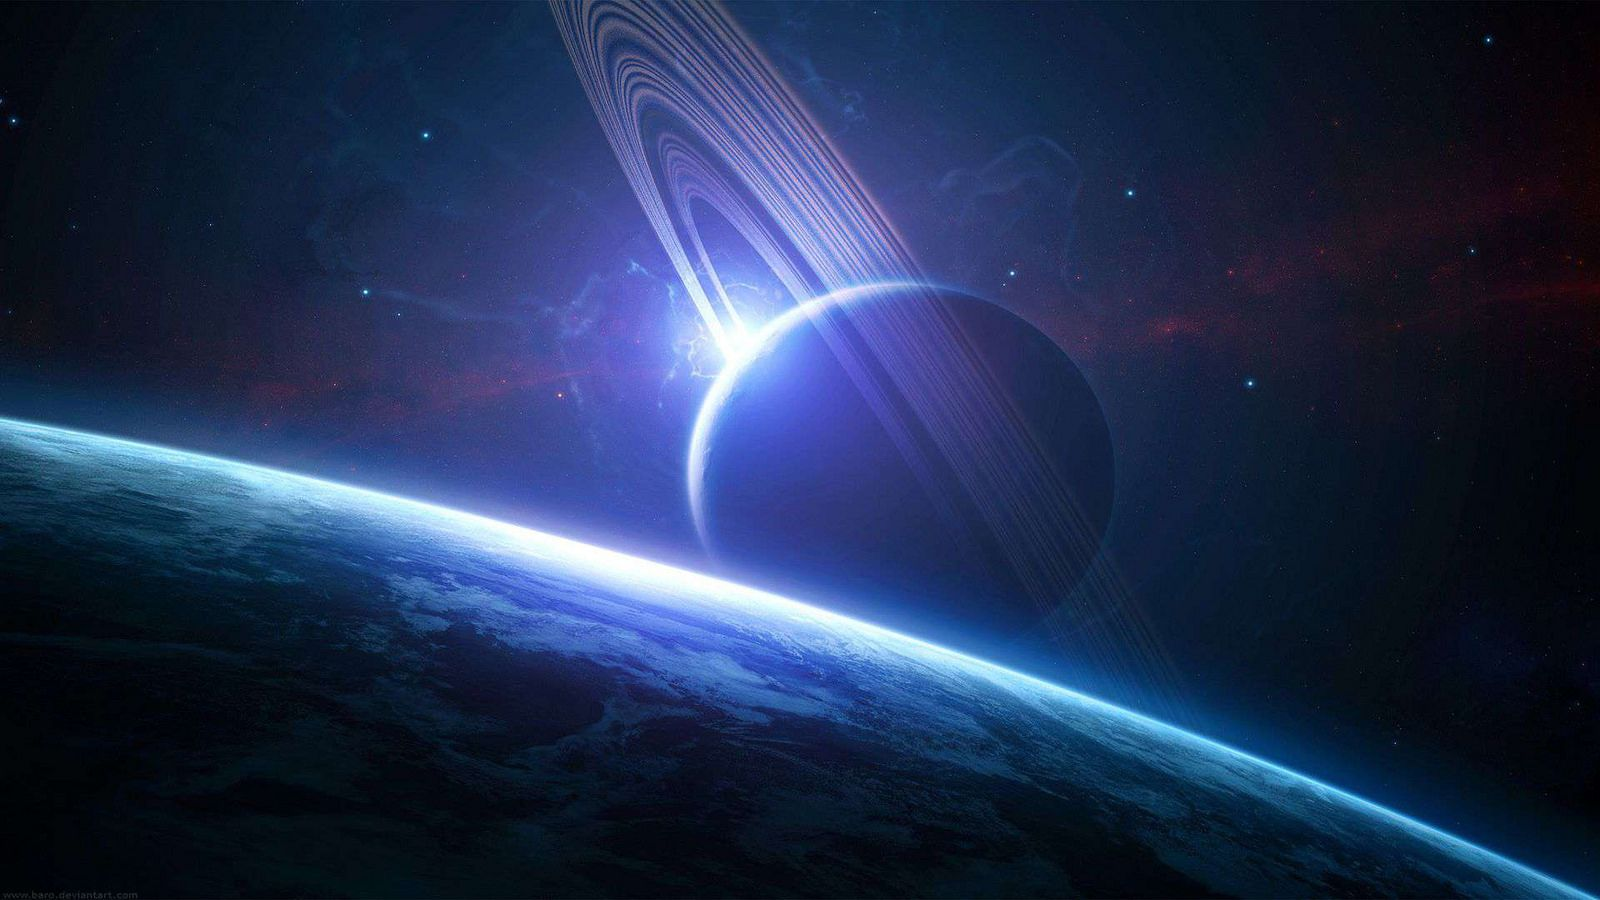 Best 3d Wallpapers Best 3d Wallpapers For Desktop Pictures Planets Wallpaper Outer Space Wallpaper Wallpaper Space